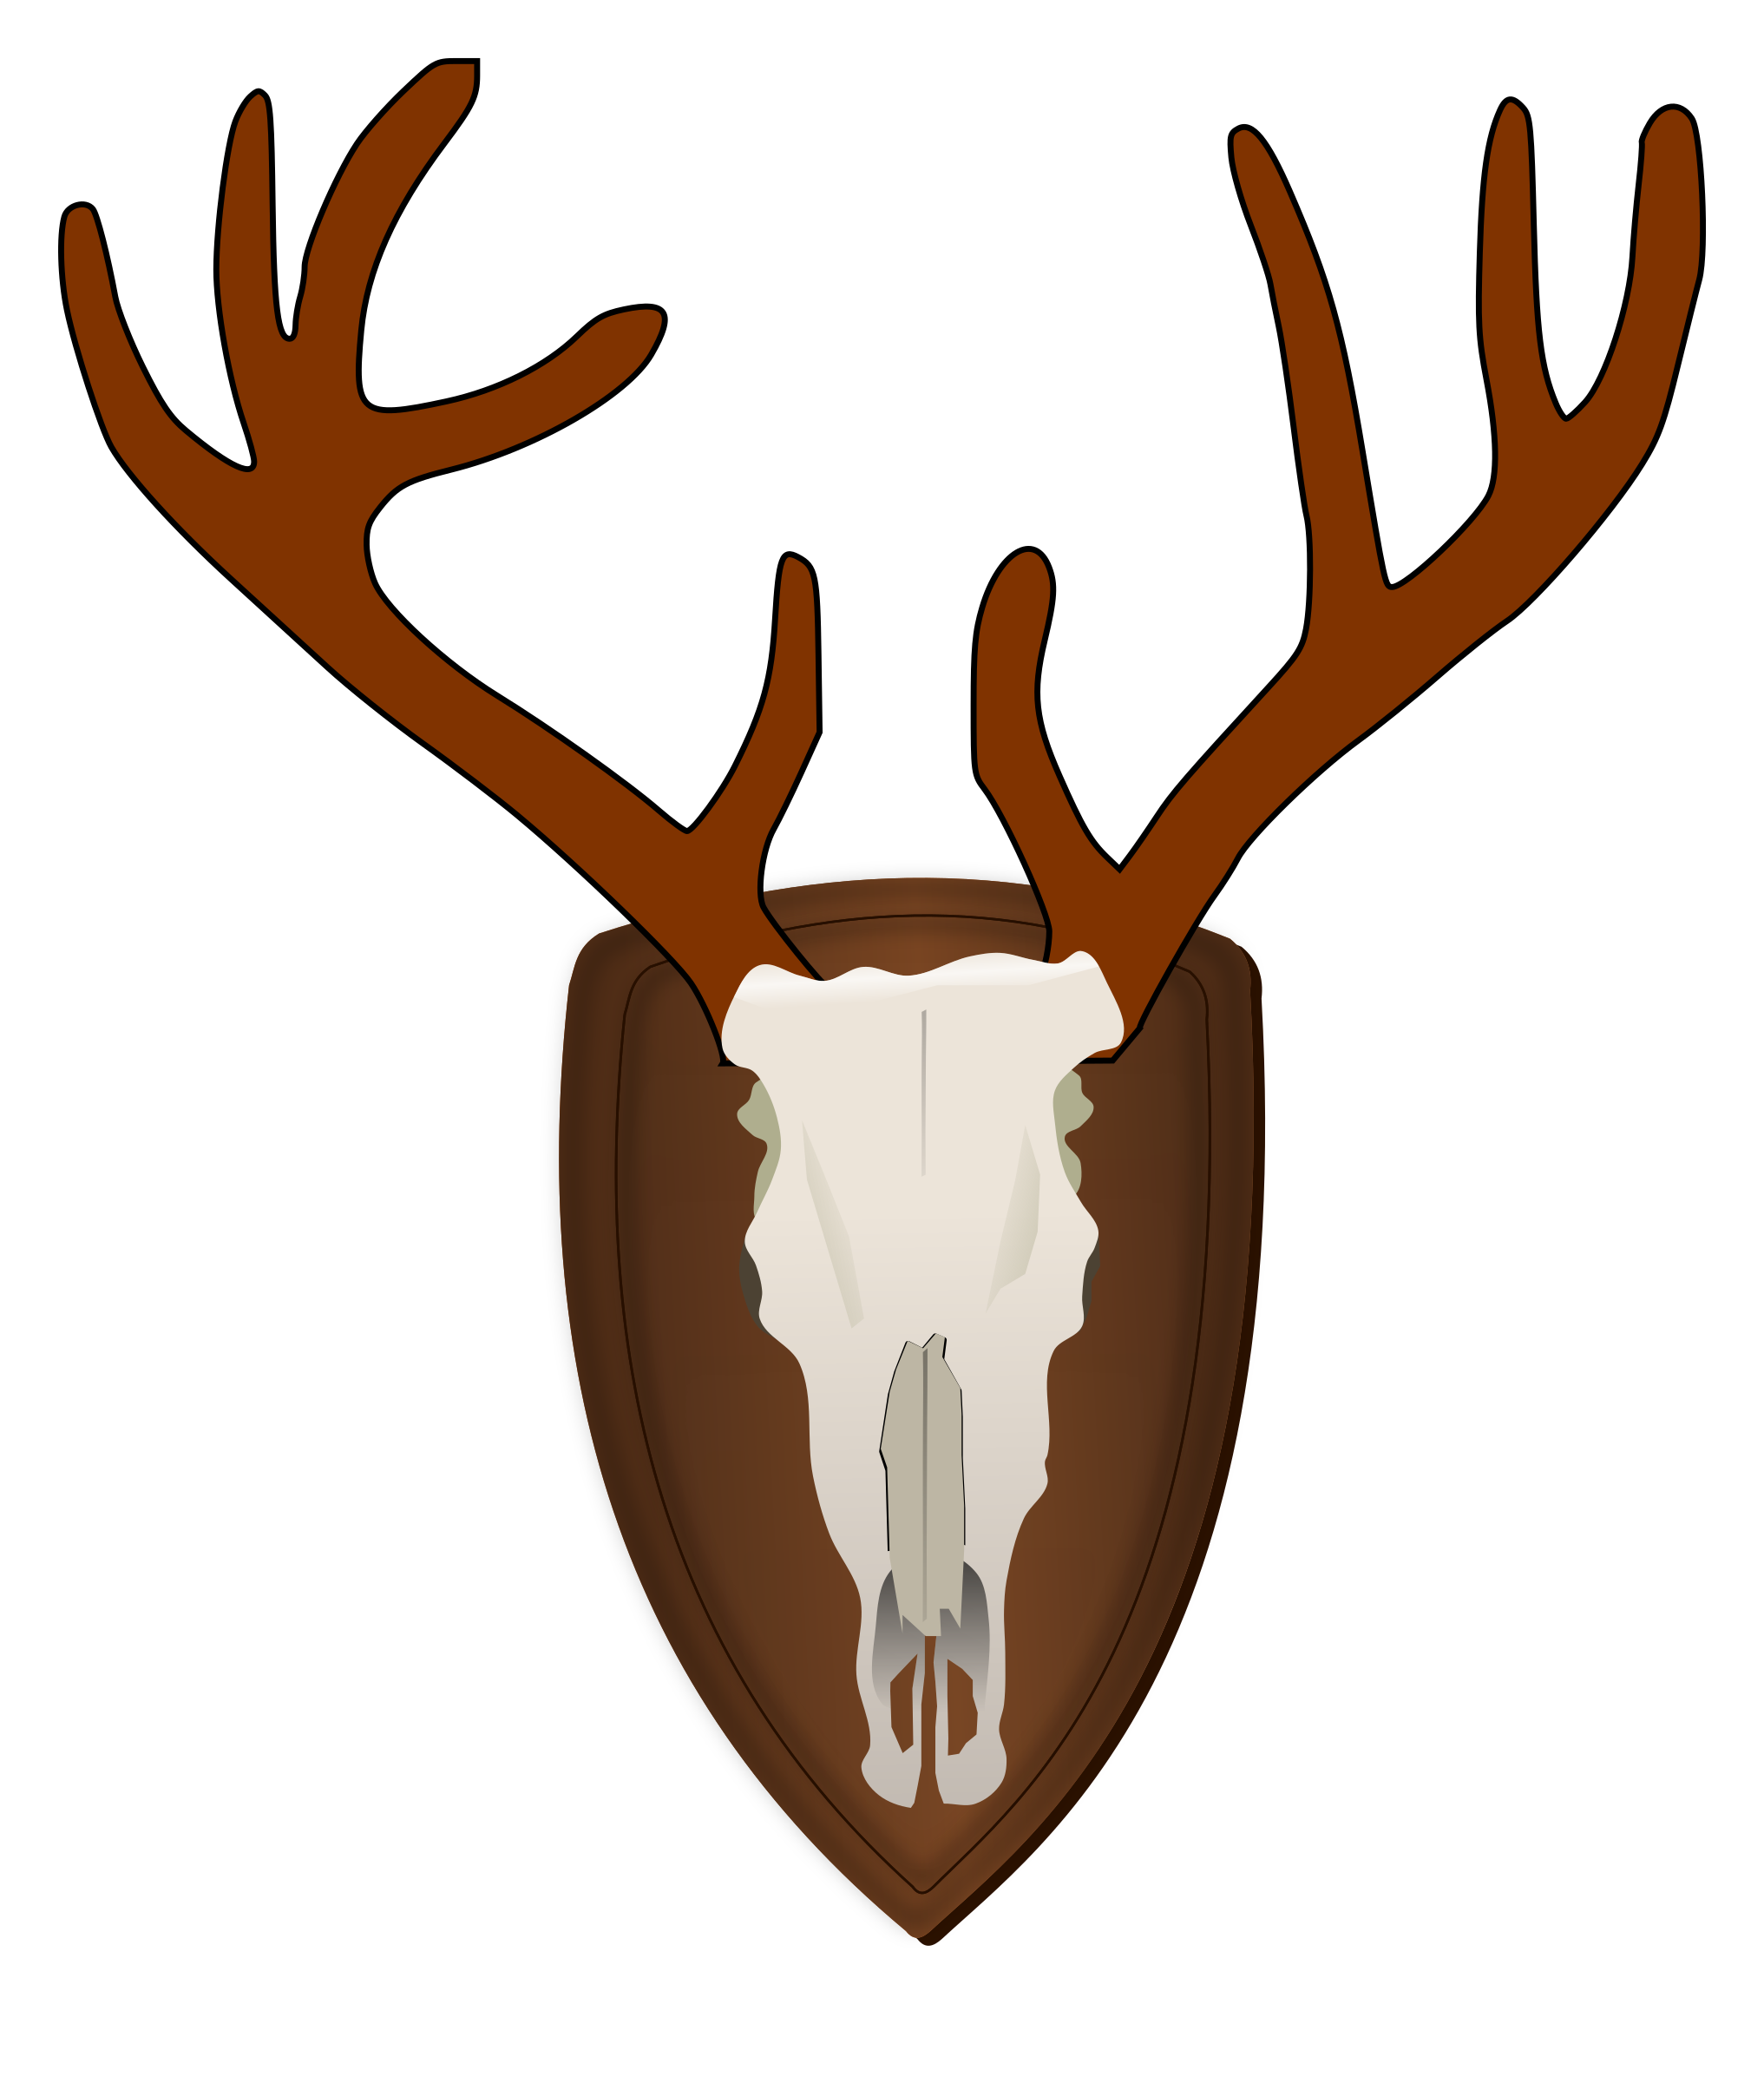 Hunting clipart border, Hunting border Transparent FREE for.